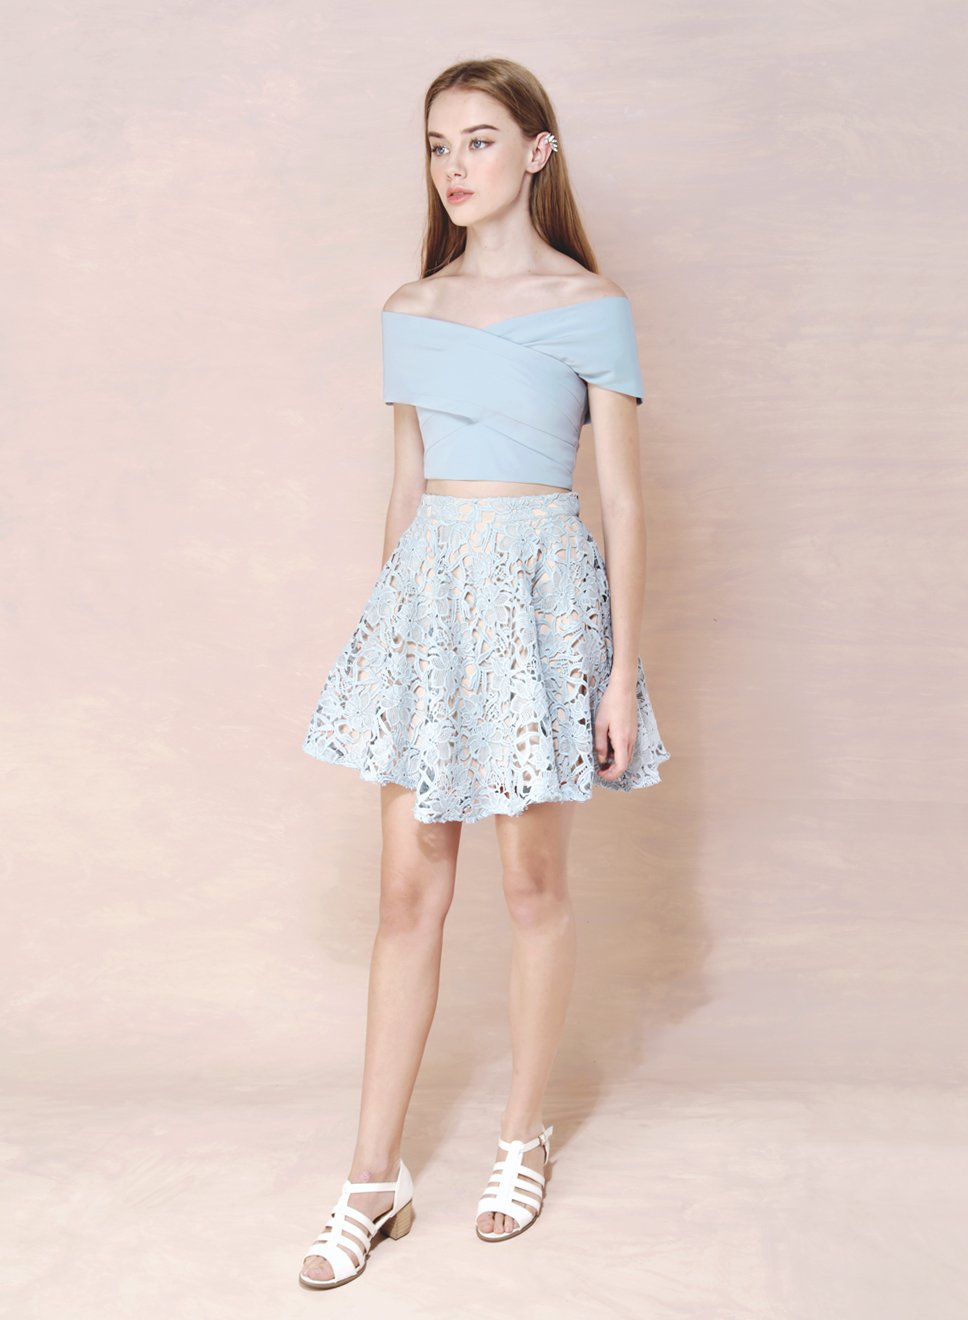 FACADE Crochet Flare Skirt (Sky) at $ 21.50 only sold at And Well Dressed Online Fashion Store Singapore